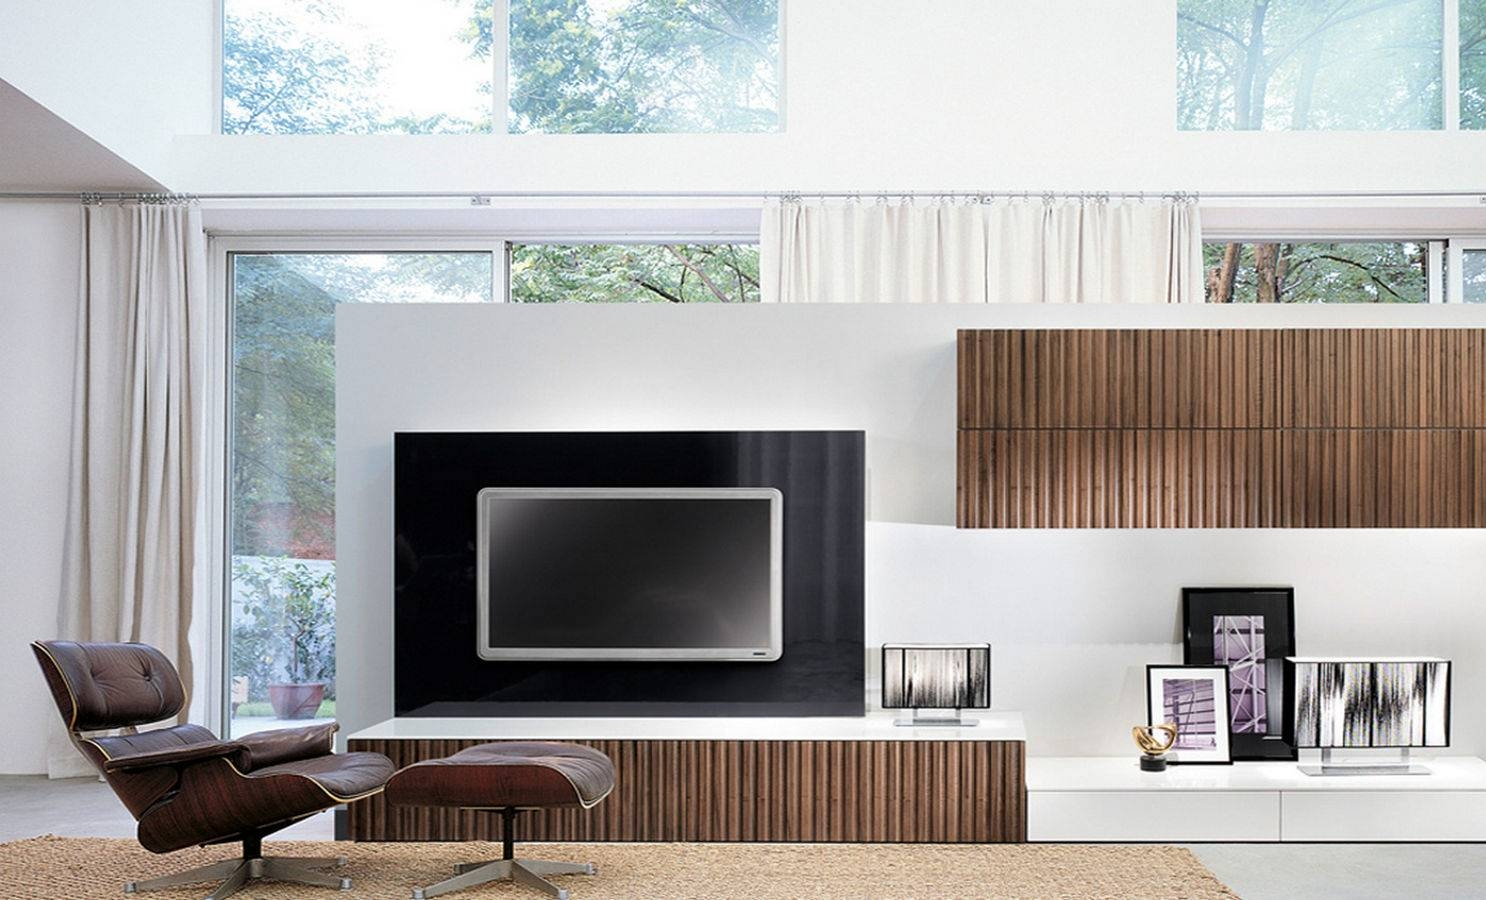 Living Room : Modern Wall Units With Three Levels Complete With Tv for On The Wall Tv Units (Image 5 of 15)